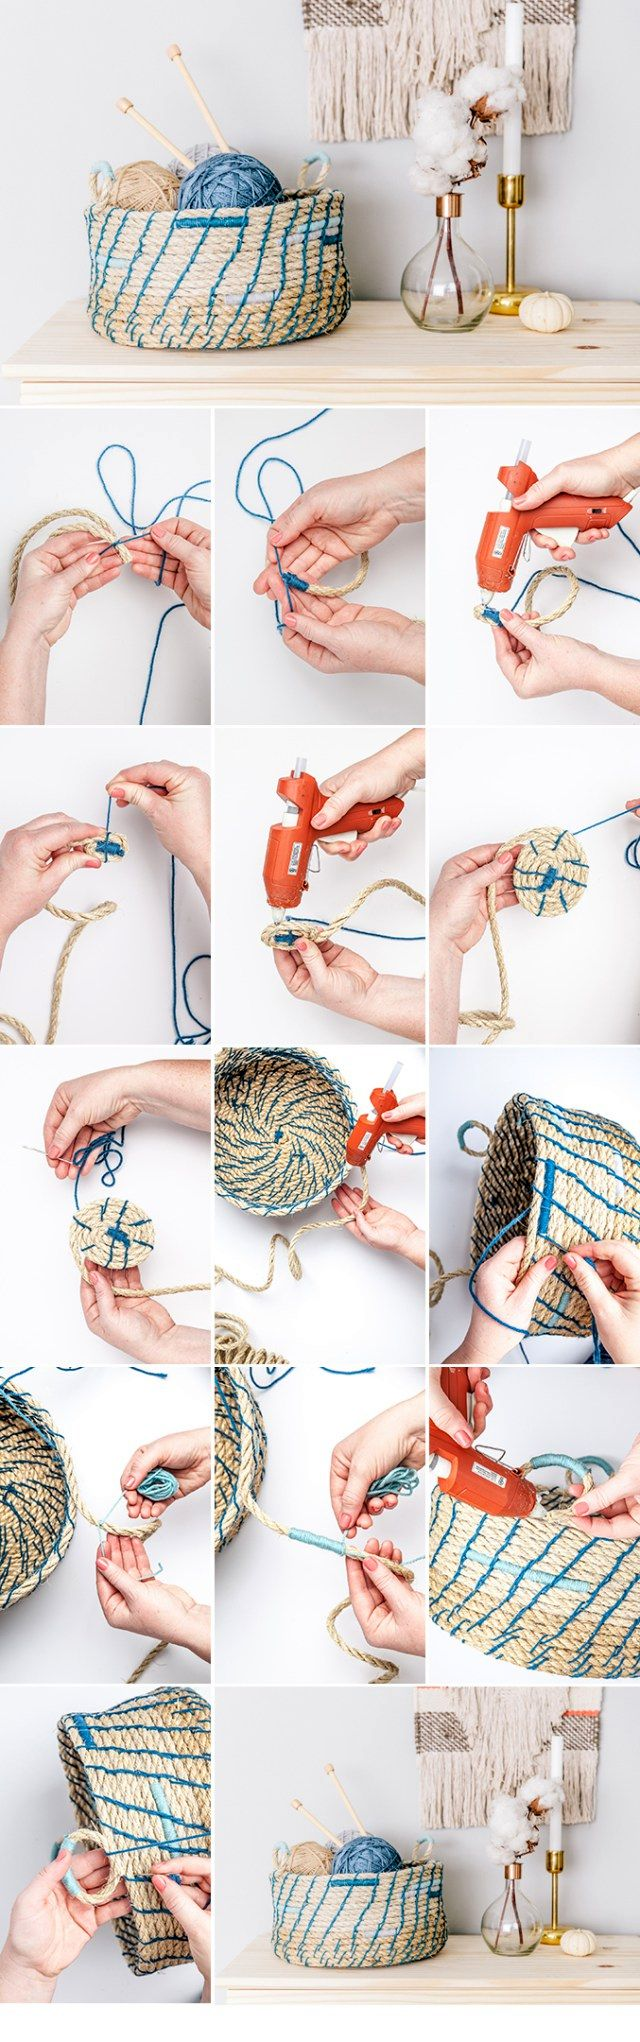 Basket of rope how to make